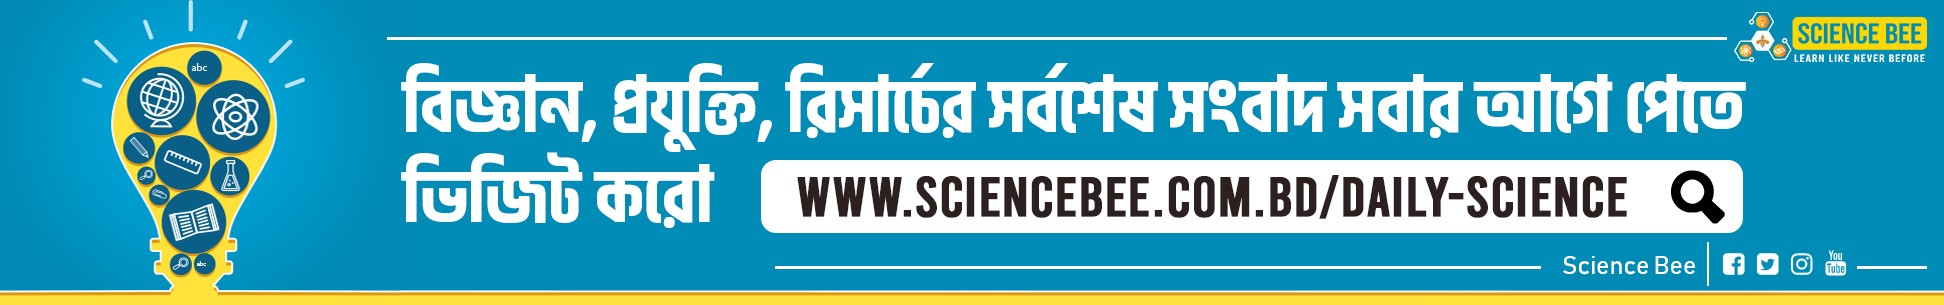 Science Bee | Daily Science